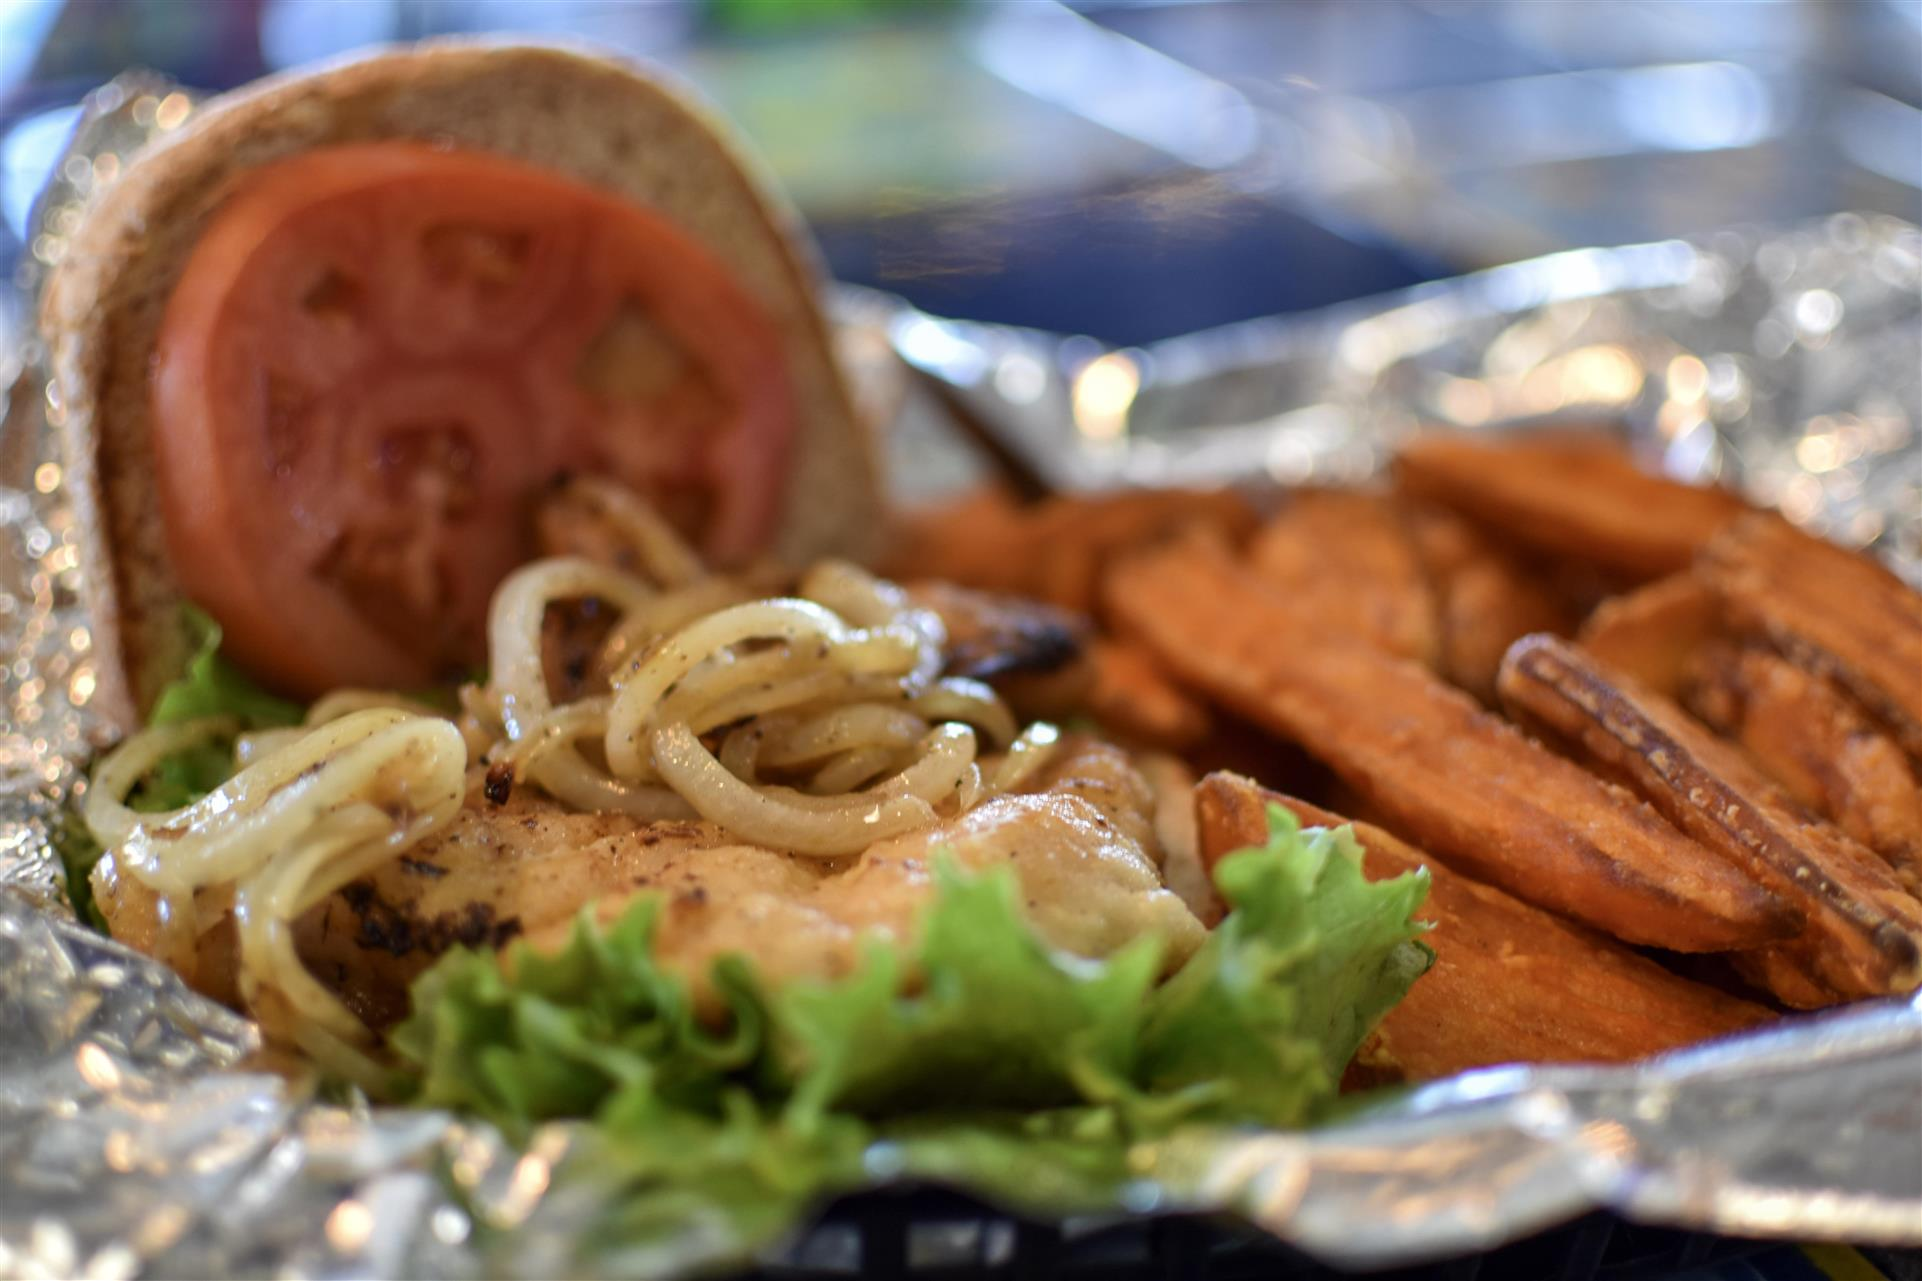 open faced sandwich with tomato, lettuce, onions with a side of sweet potatoes